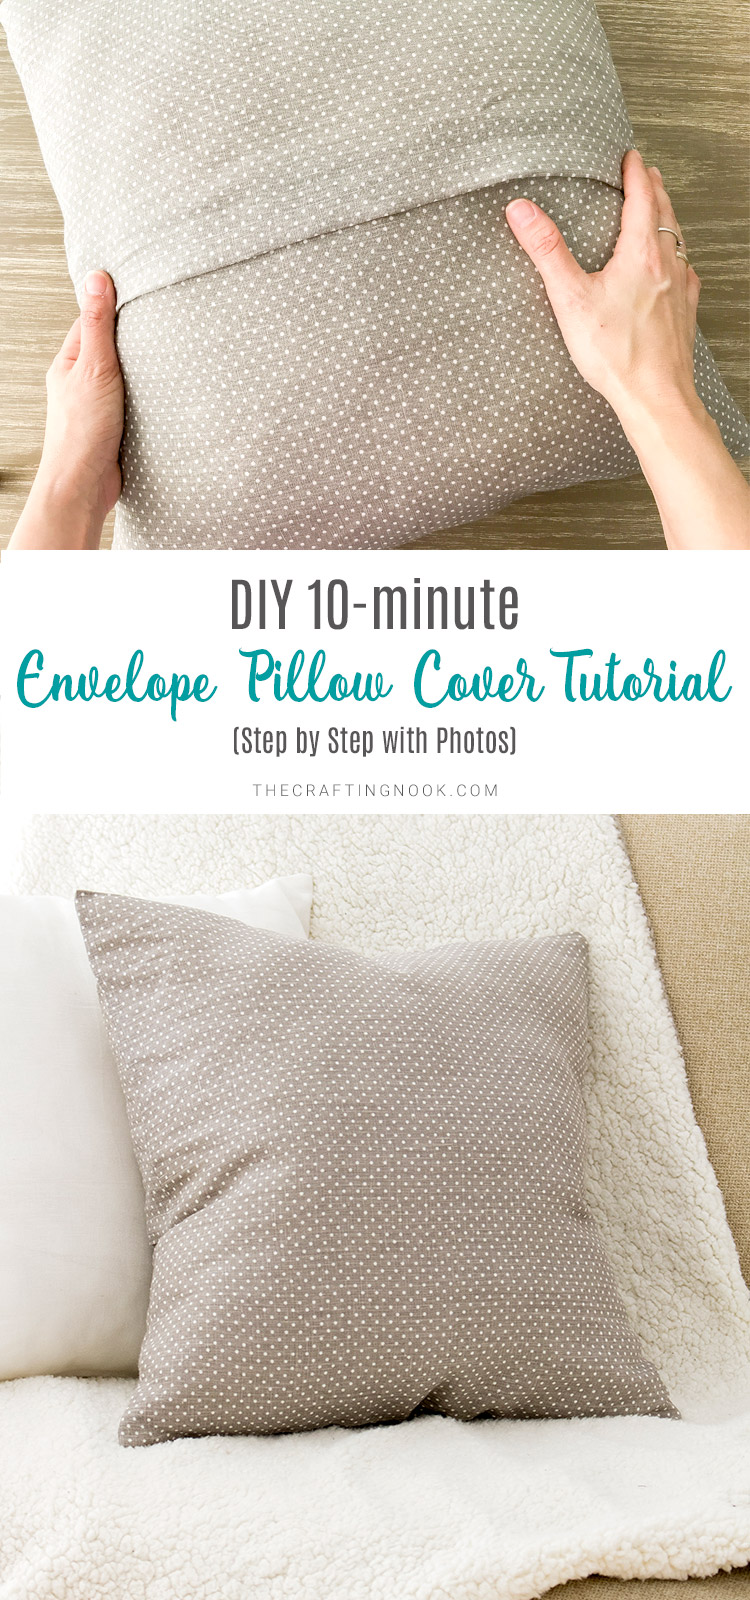 DIY 10-minute Envelope Pillow Cover Tutorial (Step by Step with Photos)